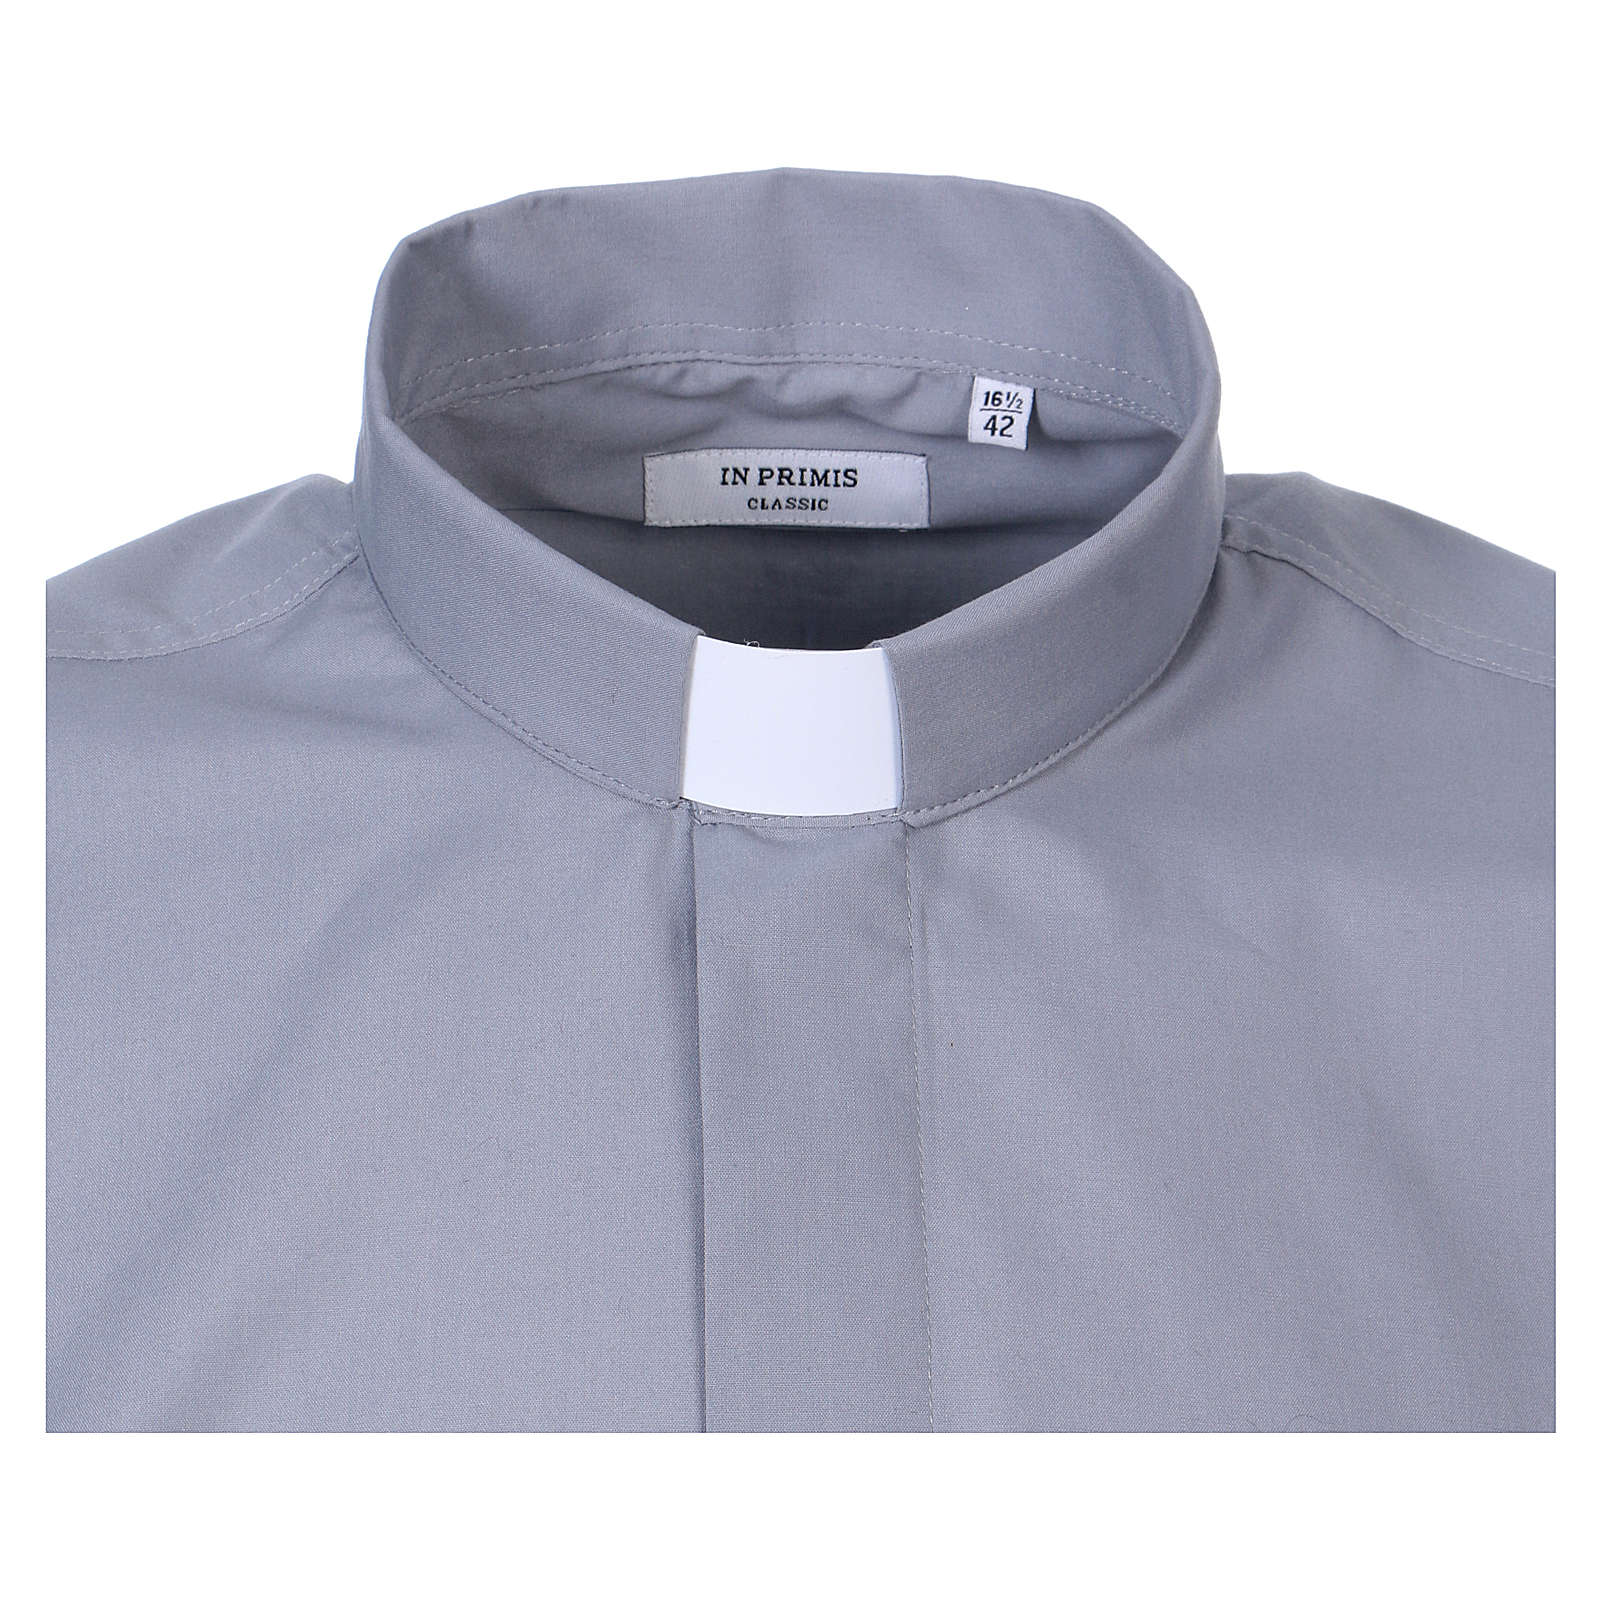 Long-sleeved clergy shirt in light grey cotton blend 4